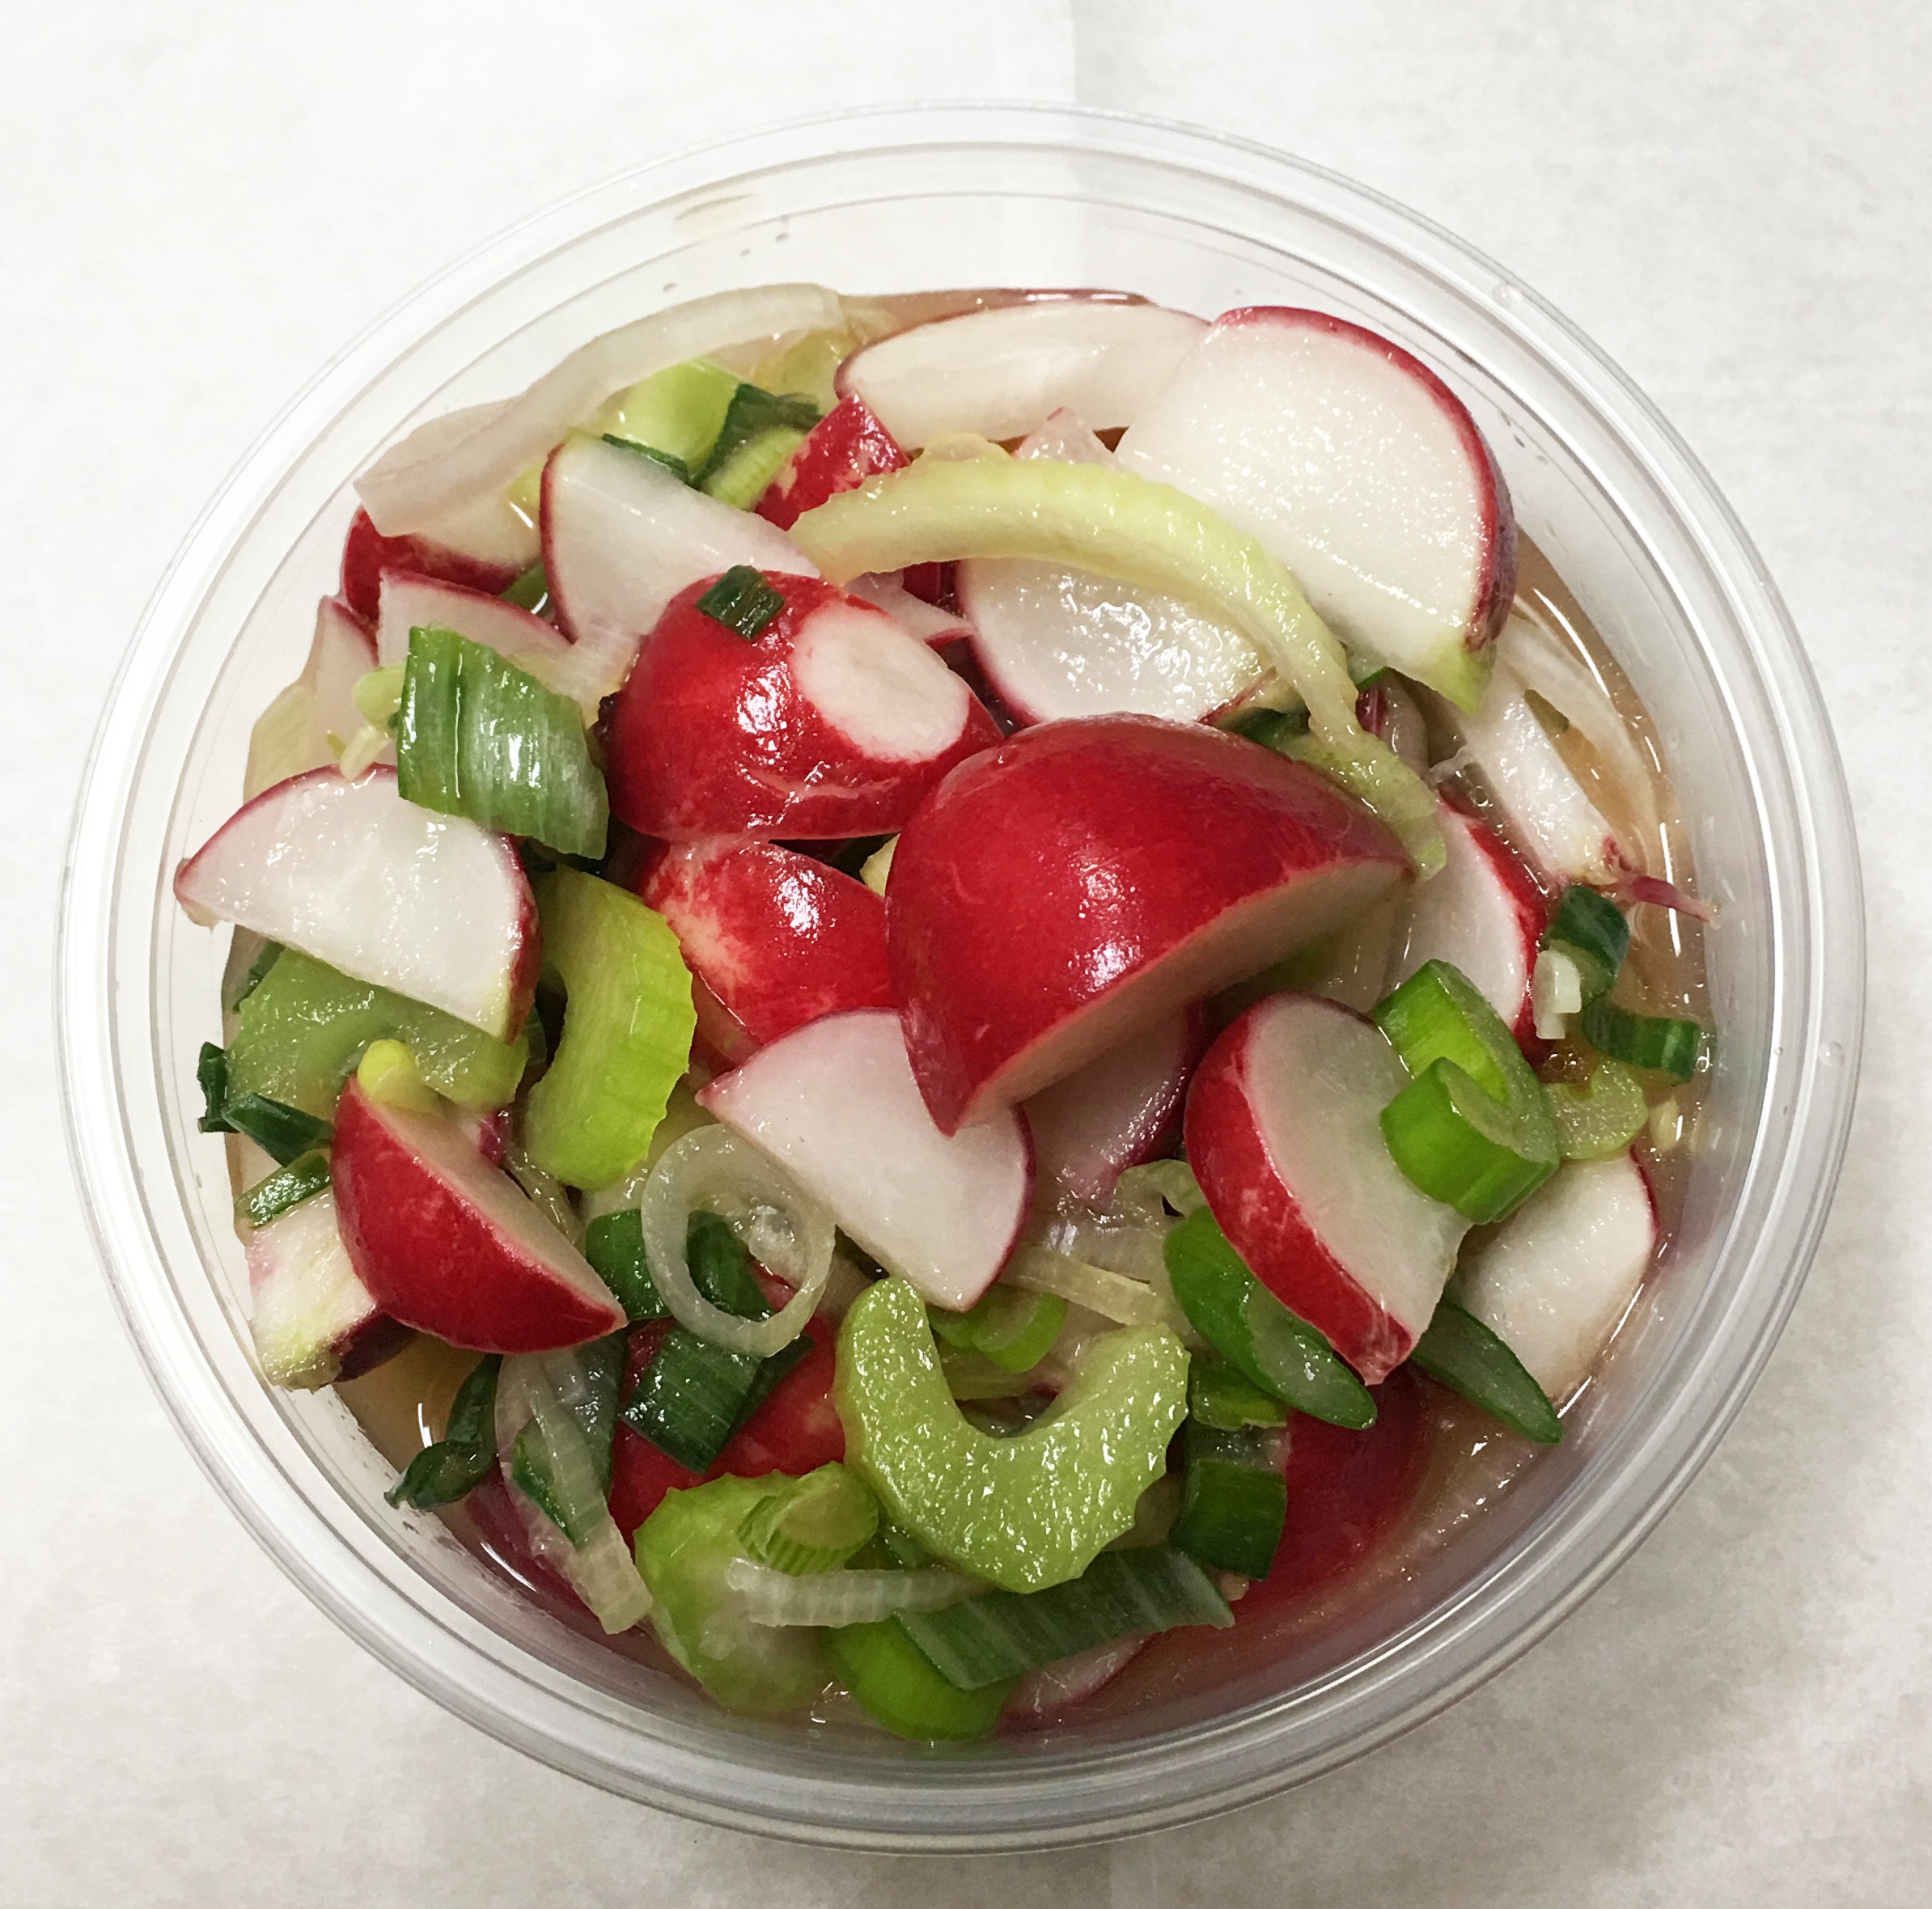 Marinated red radish, celery and spring onion tops in a lemon, orange citrus dressing.